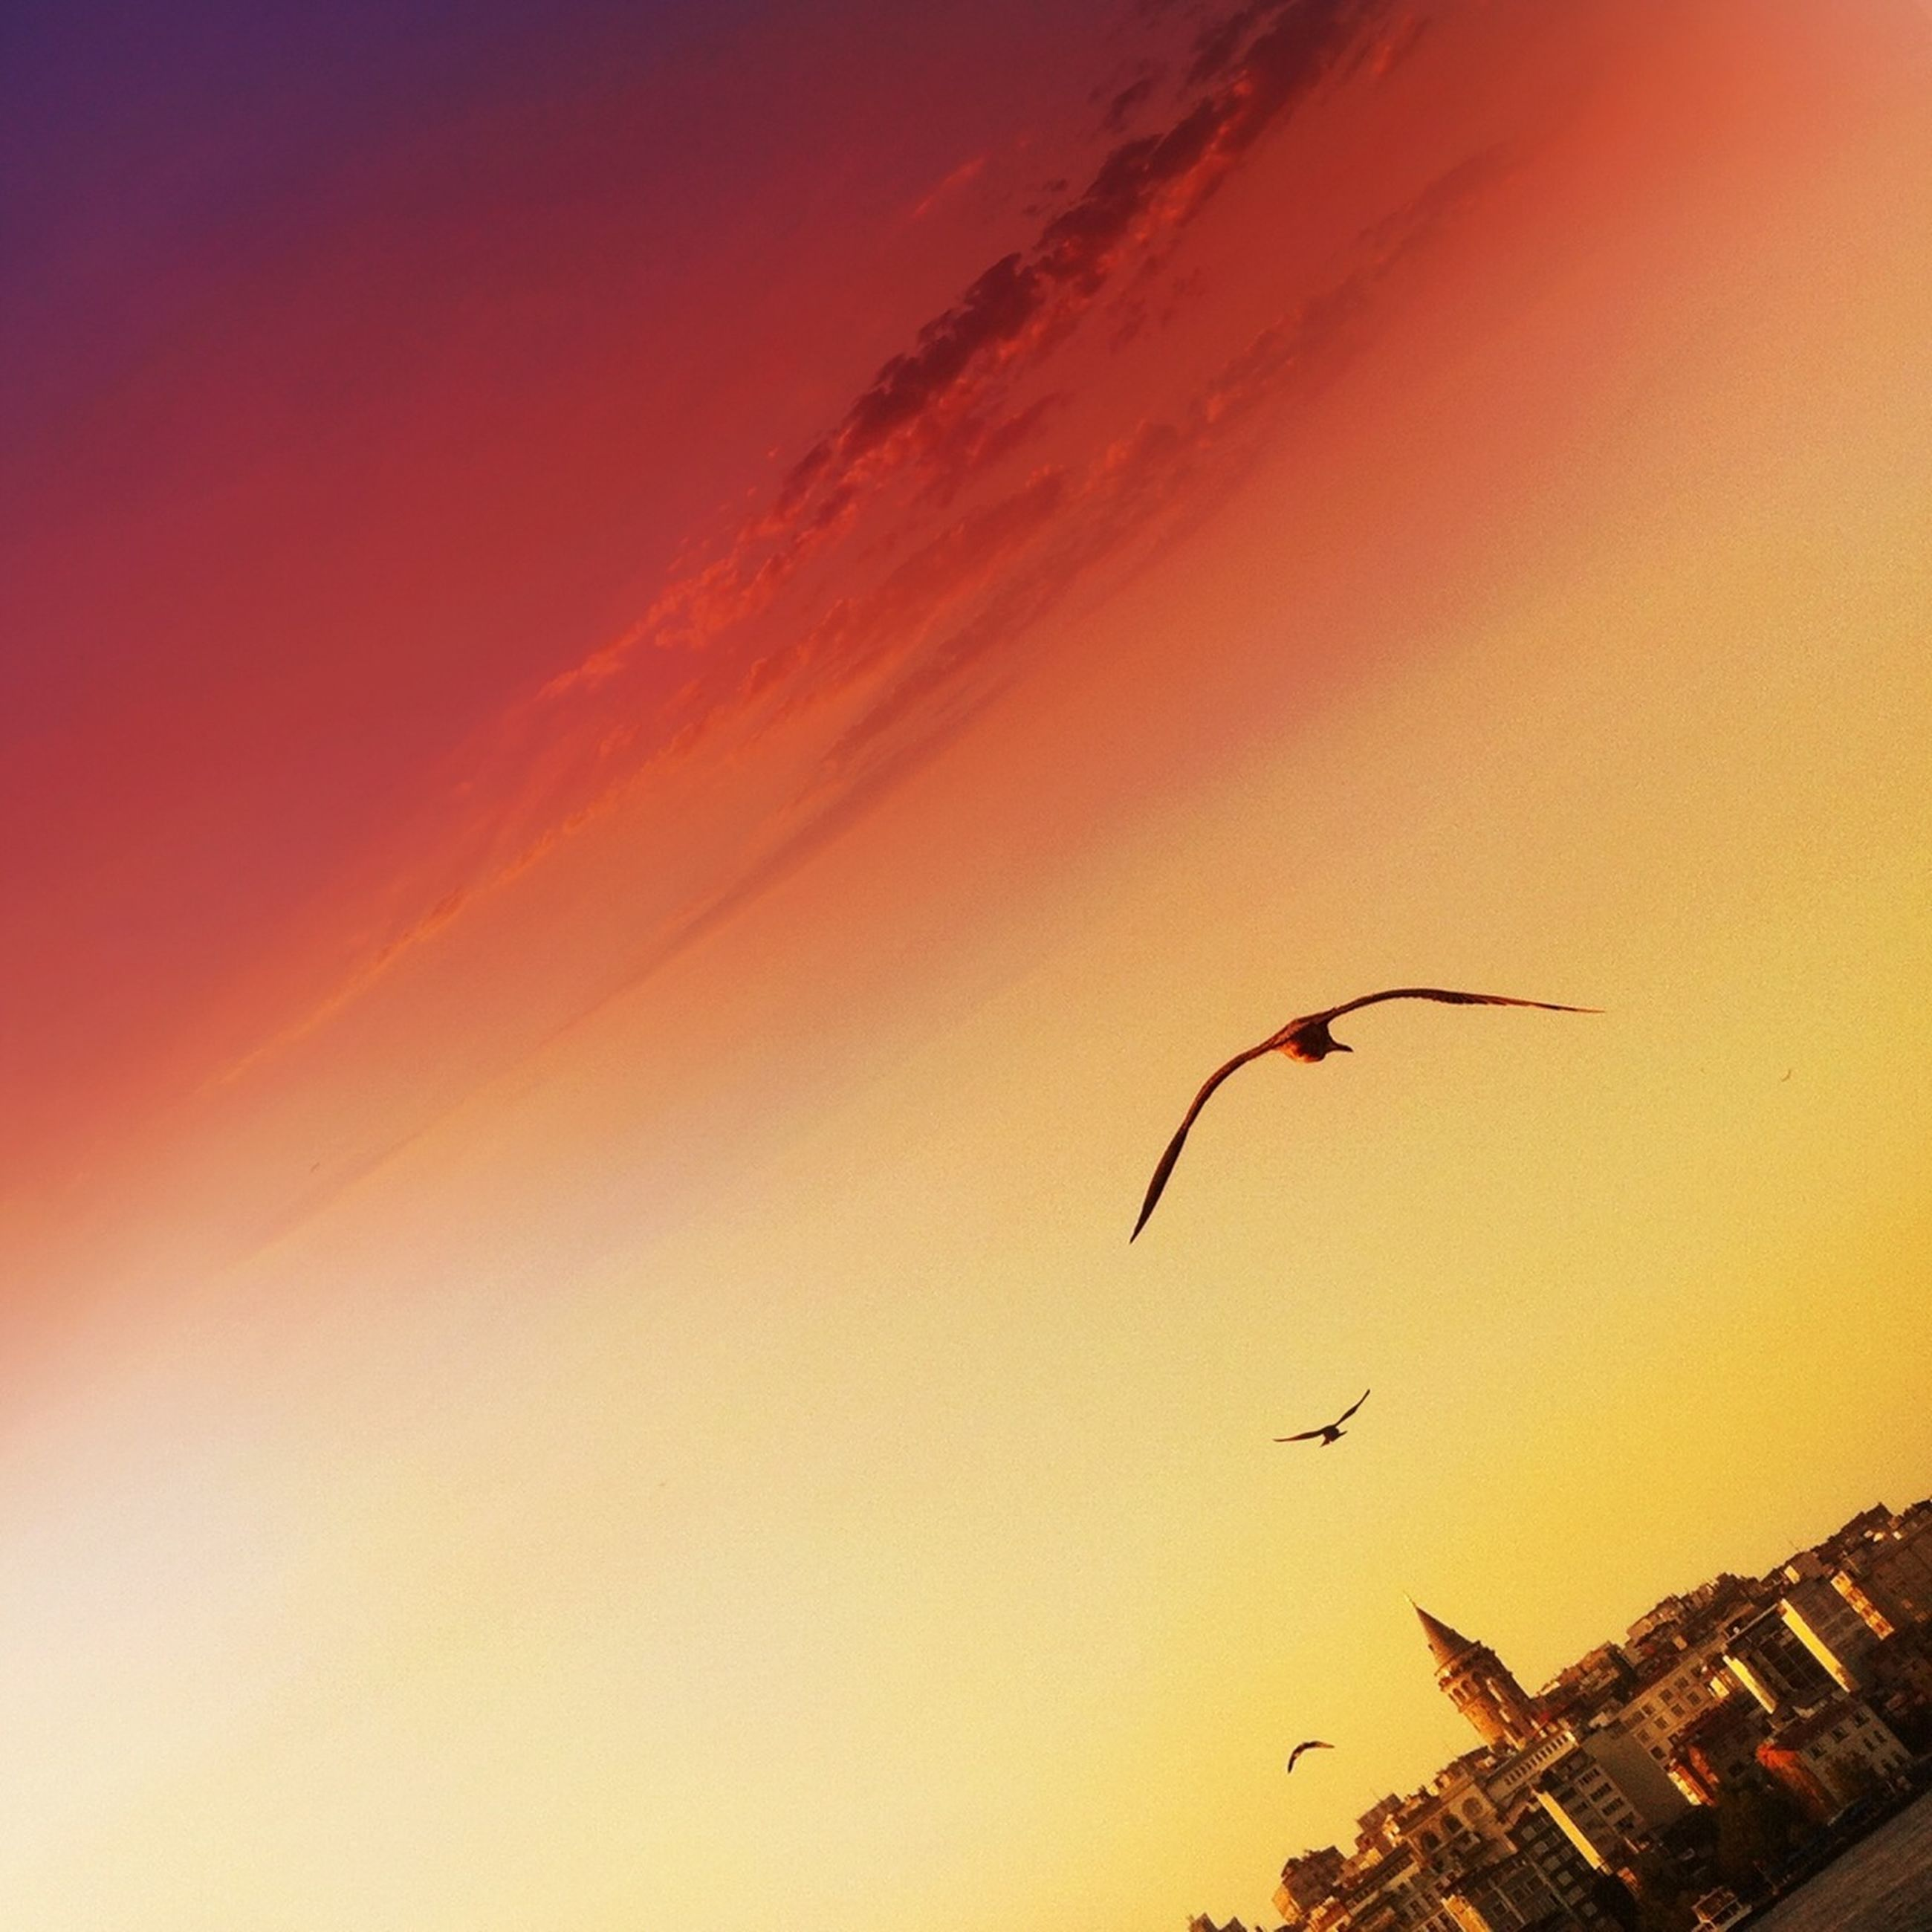 sunset, architecture, orange color, built structure, building exterior, flying, bird, low angle view, sky, silhouette, animals in the wild, animal themes, dusk, mid-air, copy space, outdoors, nature, no people, one animal, wildlife